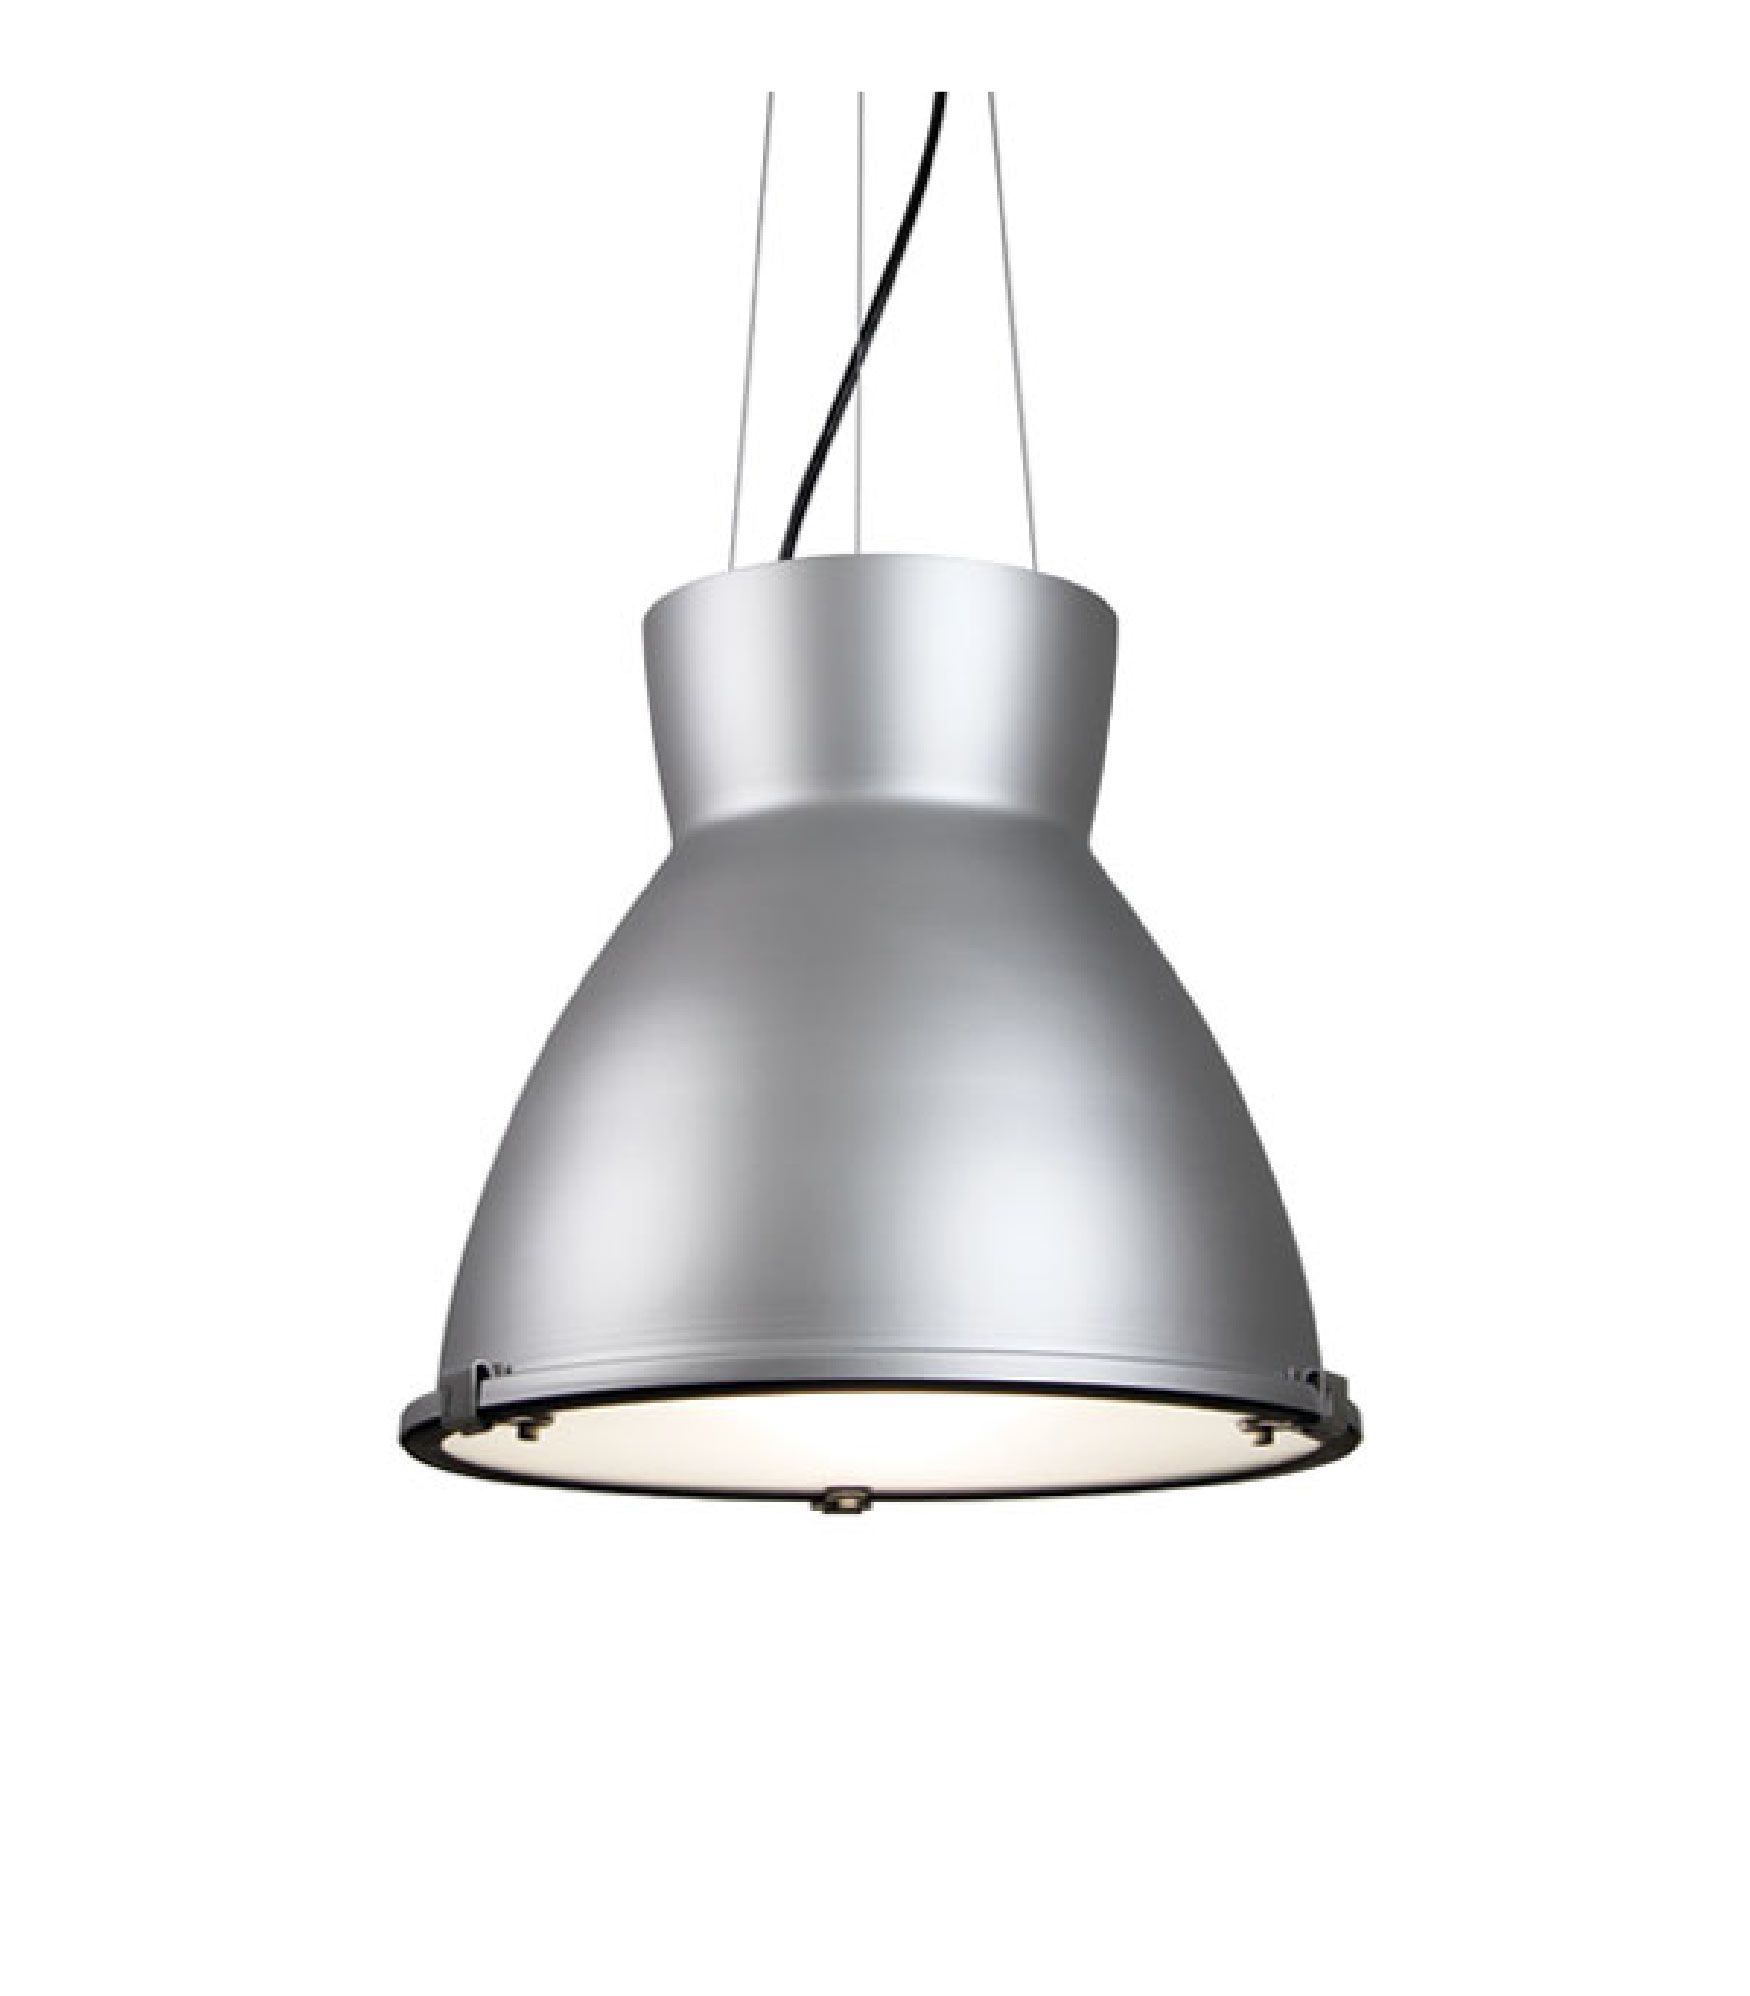 Alcon Lighting 15203 Suono Architectural Led High And Low Bay Round Pendant Mount Direct Down Light Fixture